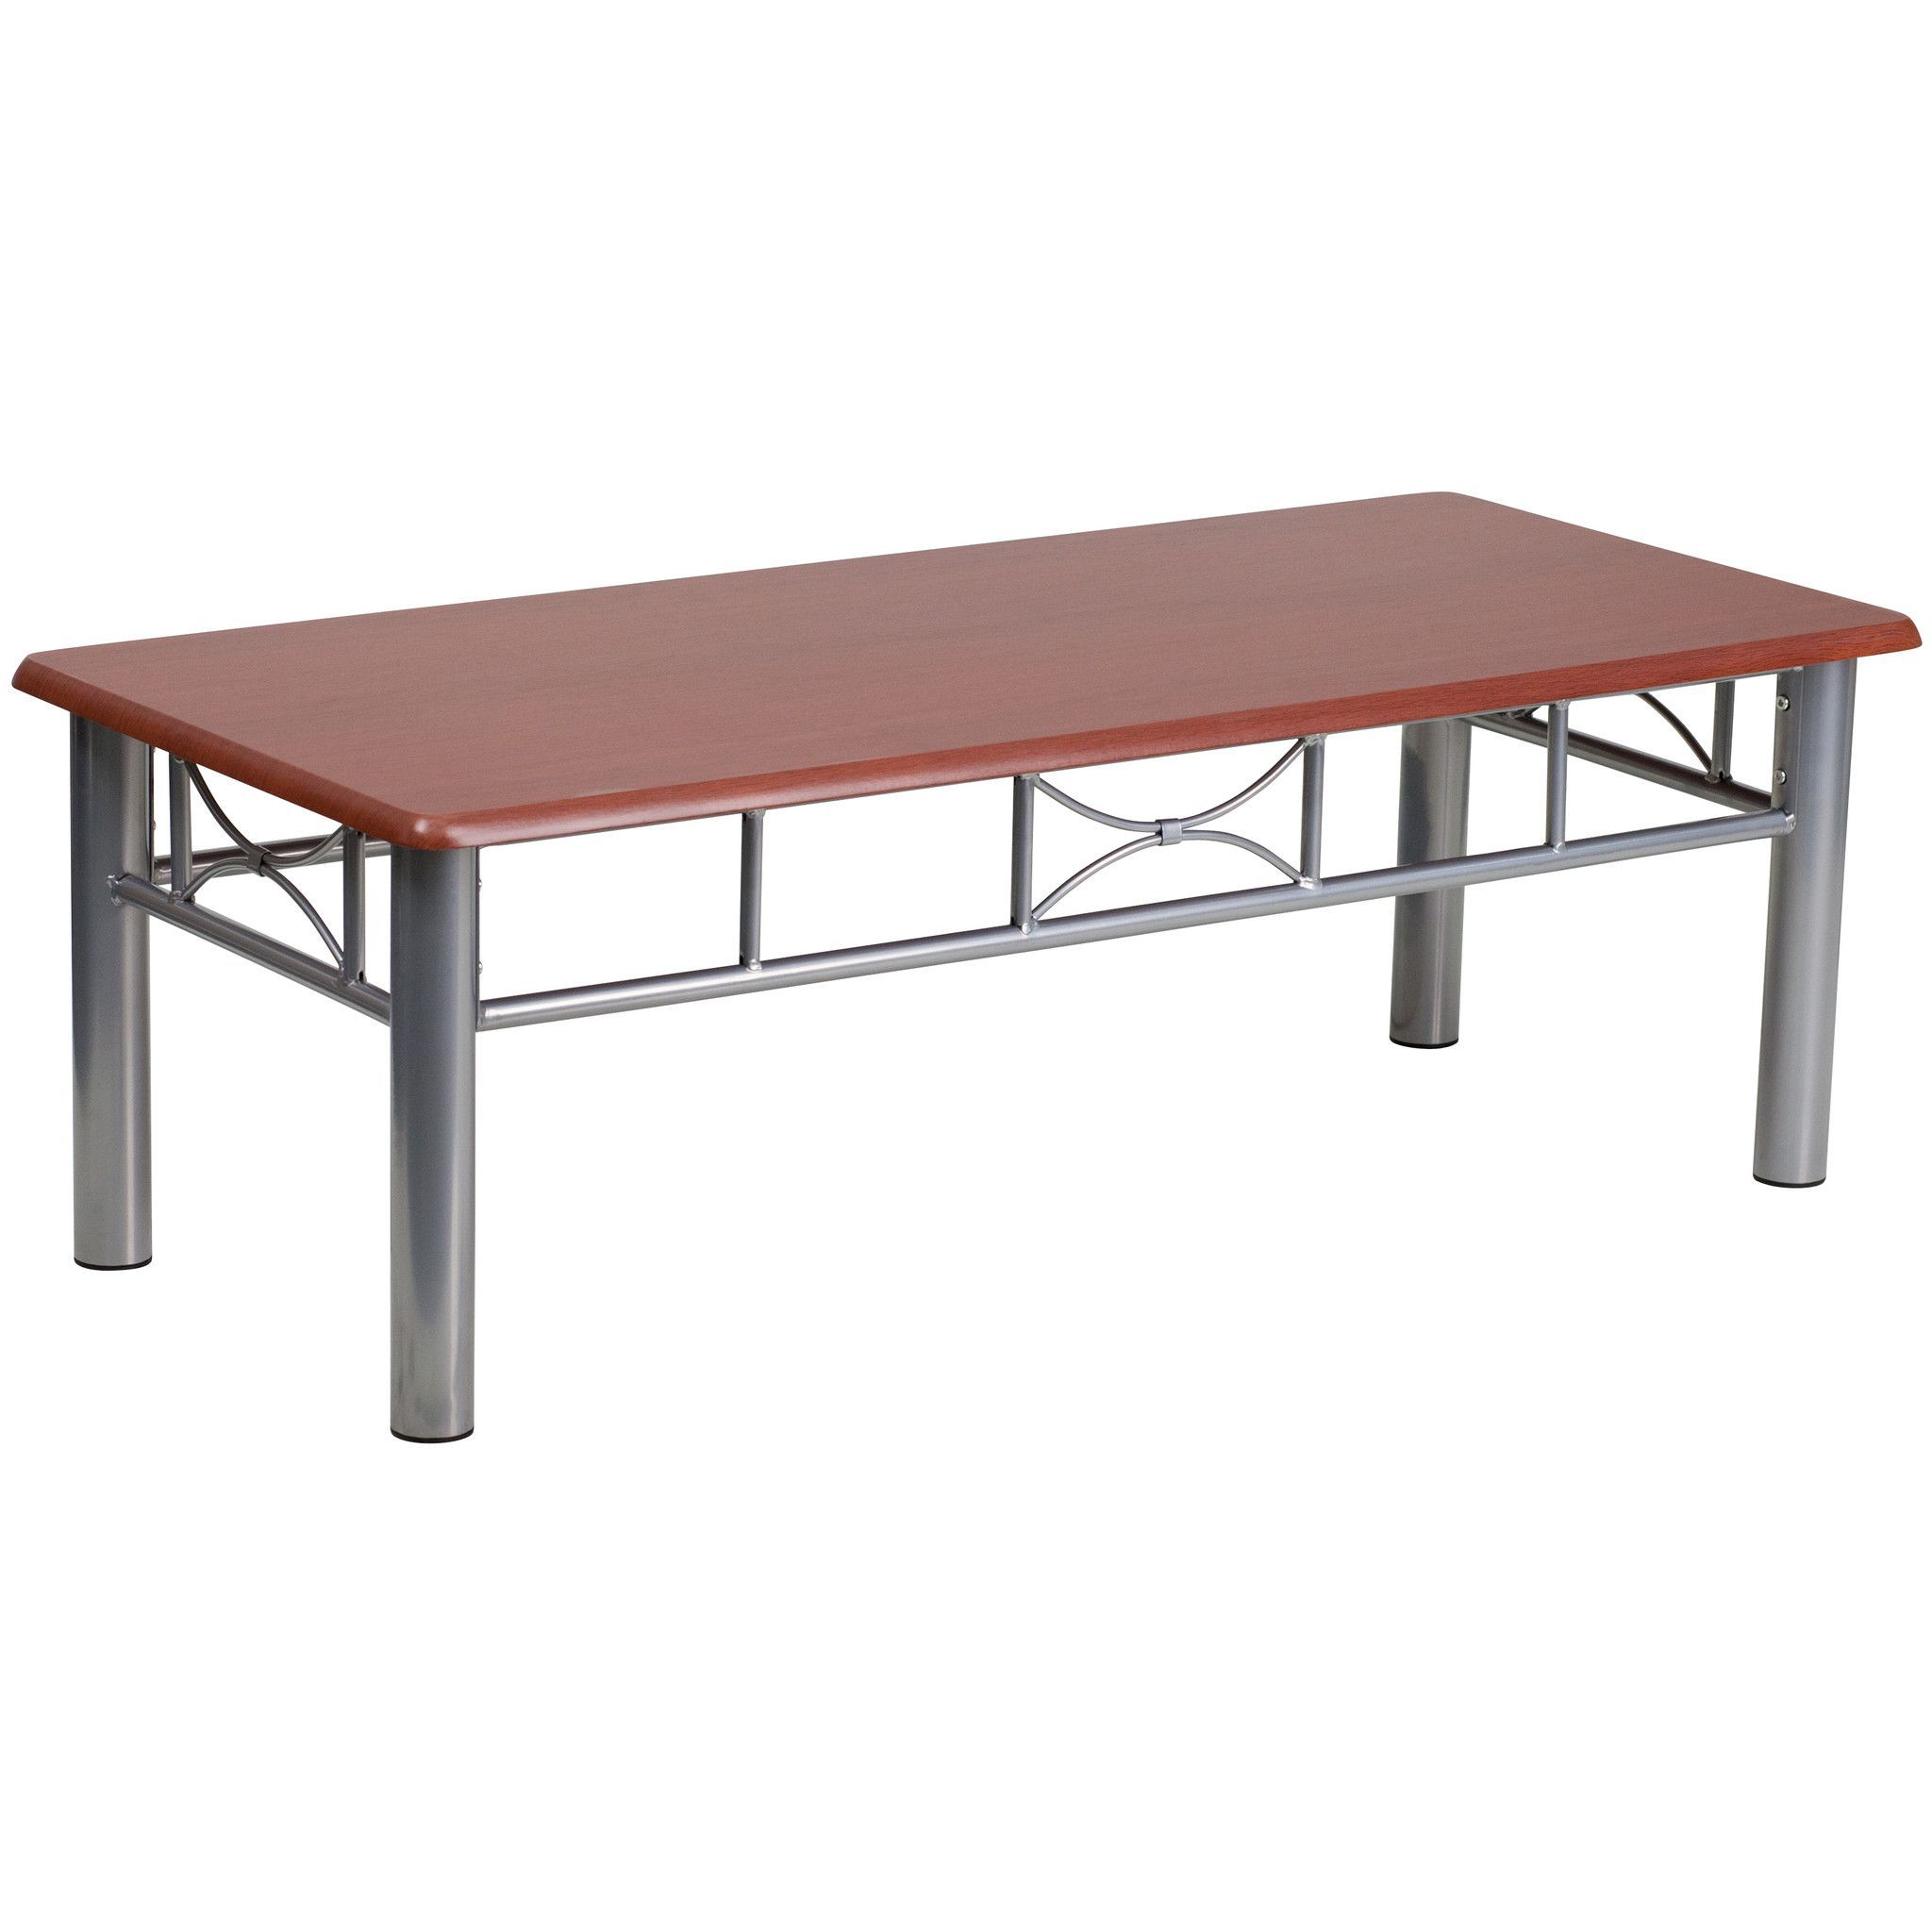 Mahogany Laminate Coffee Table with Silver Steel Frame JB 5